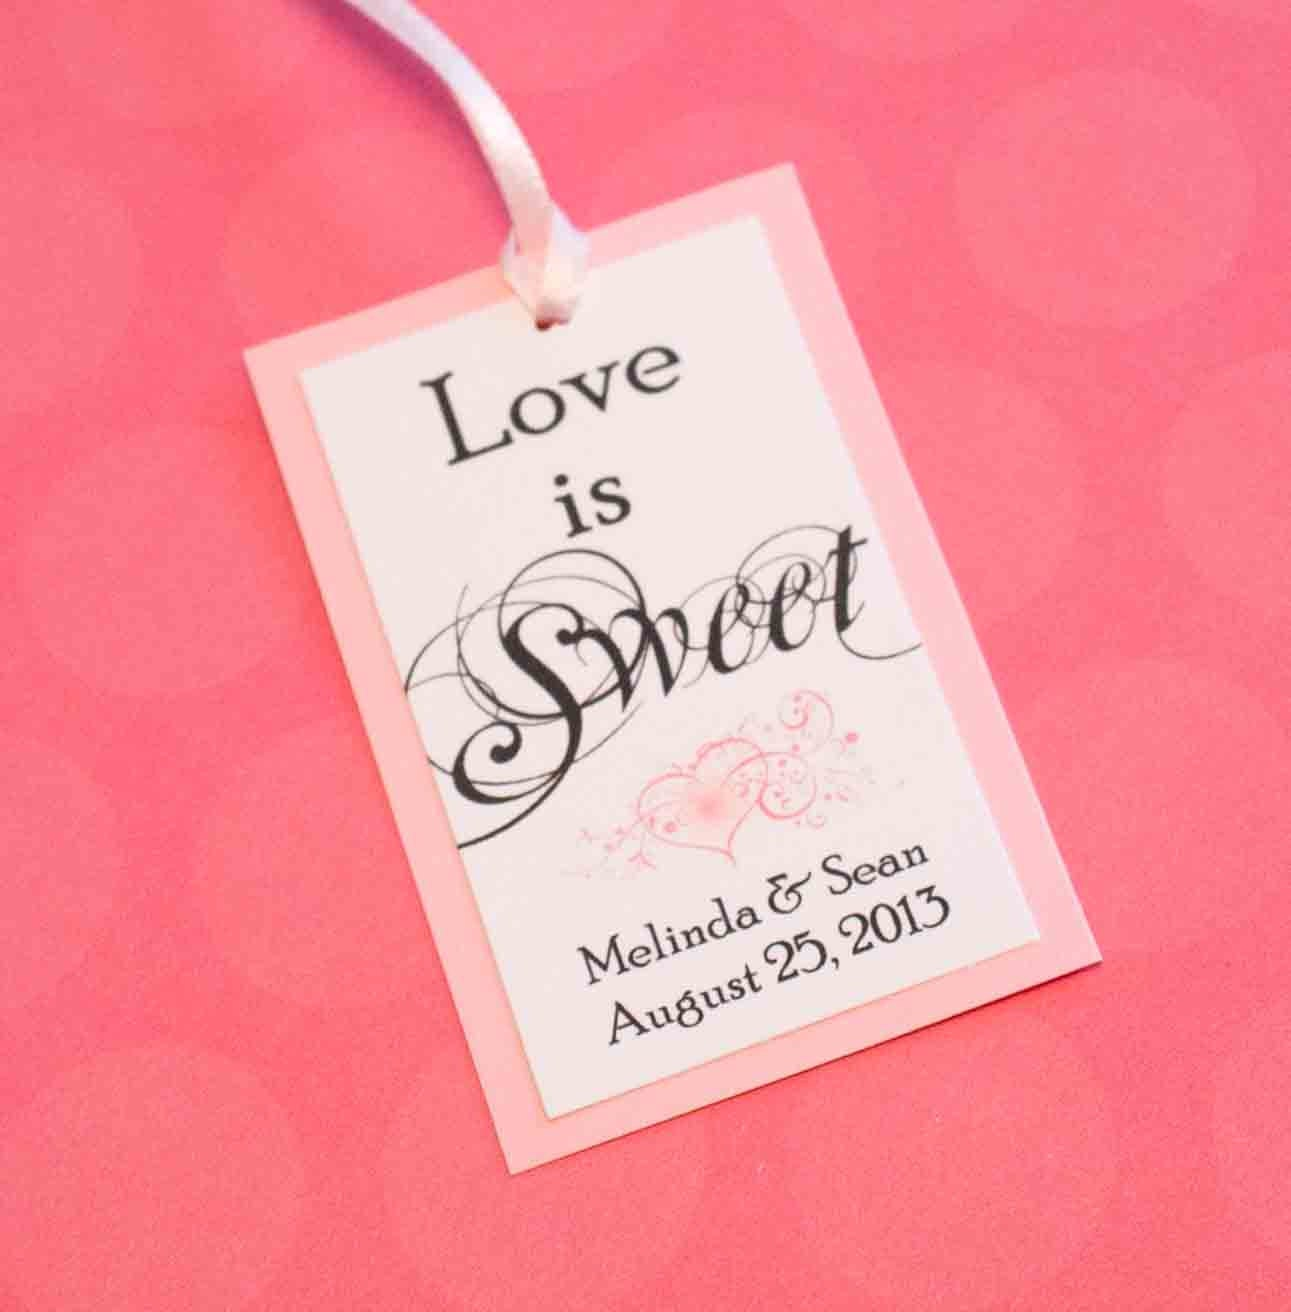 Wedding Favor Tags With Photo : ... - Love is Sweet - Wedding Favor Tags, Personalized gift tags on Etsy